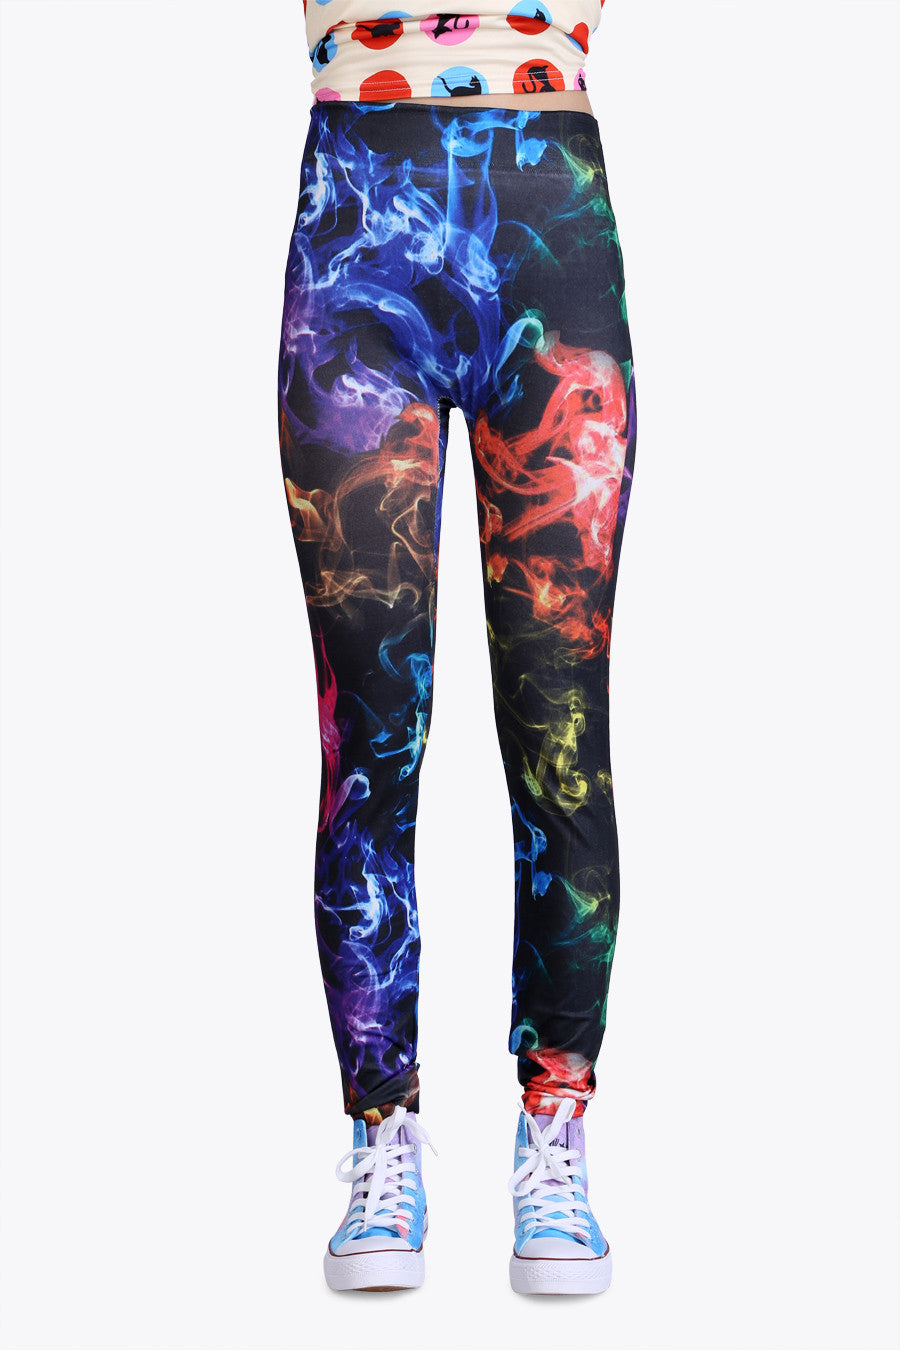 Psycho Flames Leggings